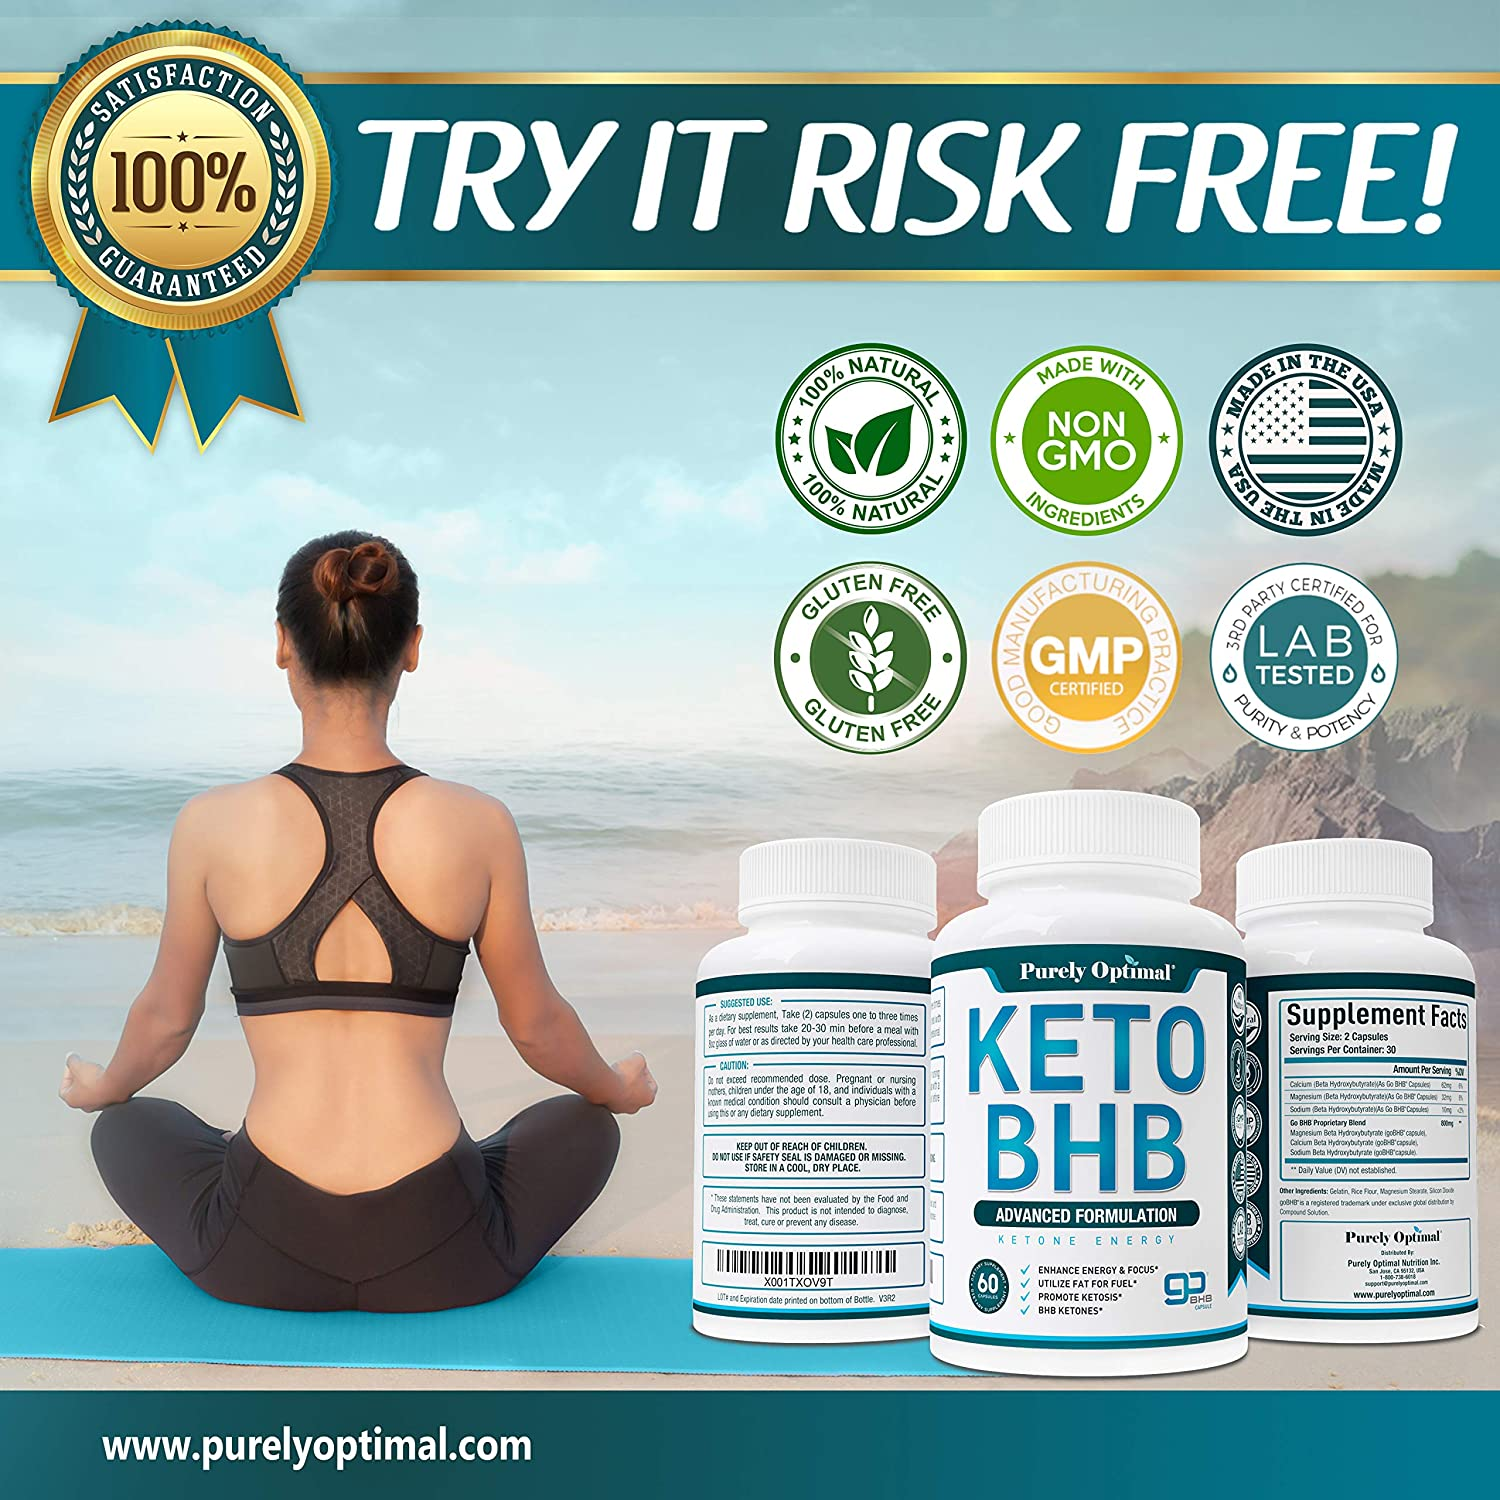 KETO BHB ingredients.